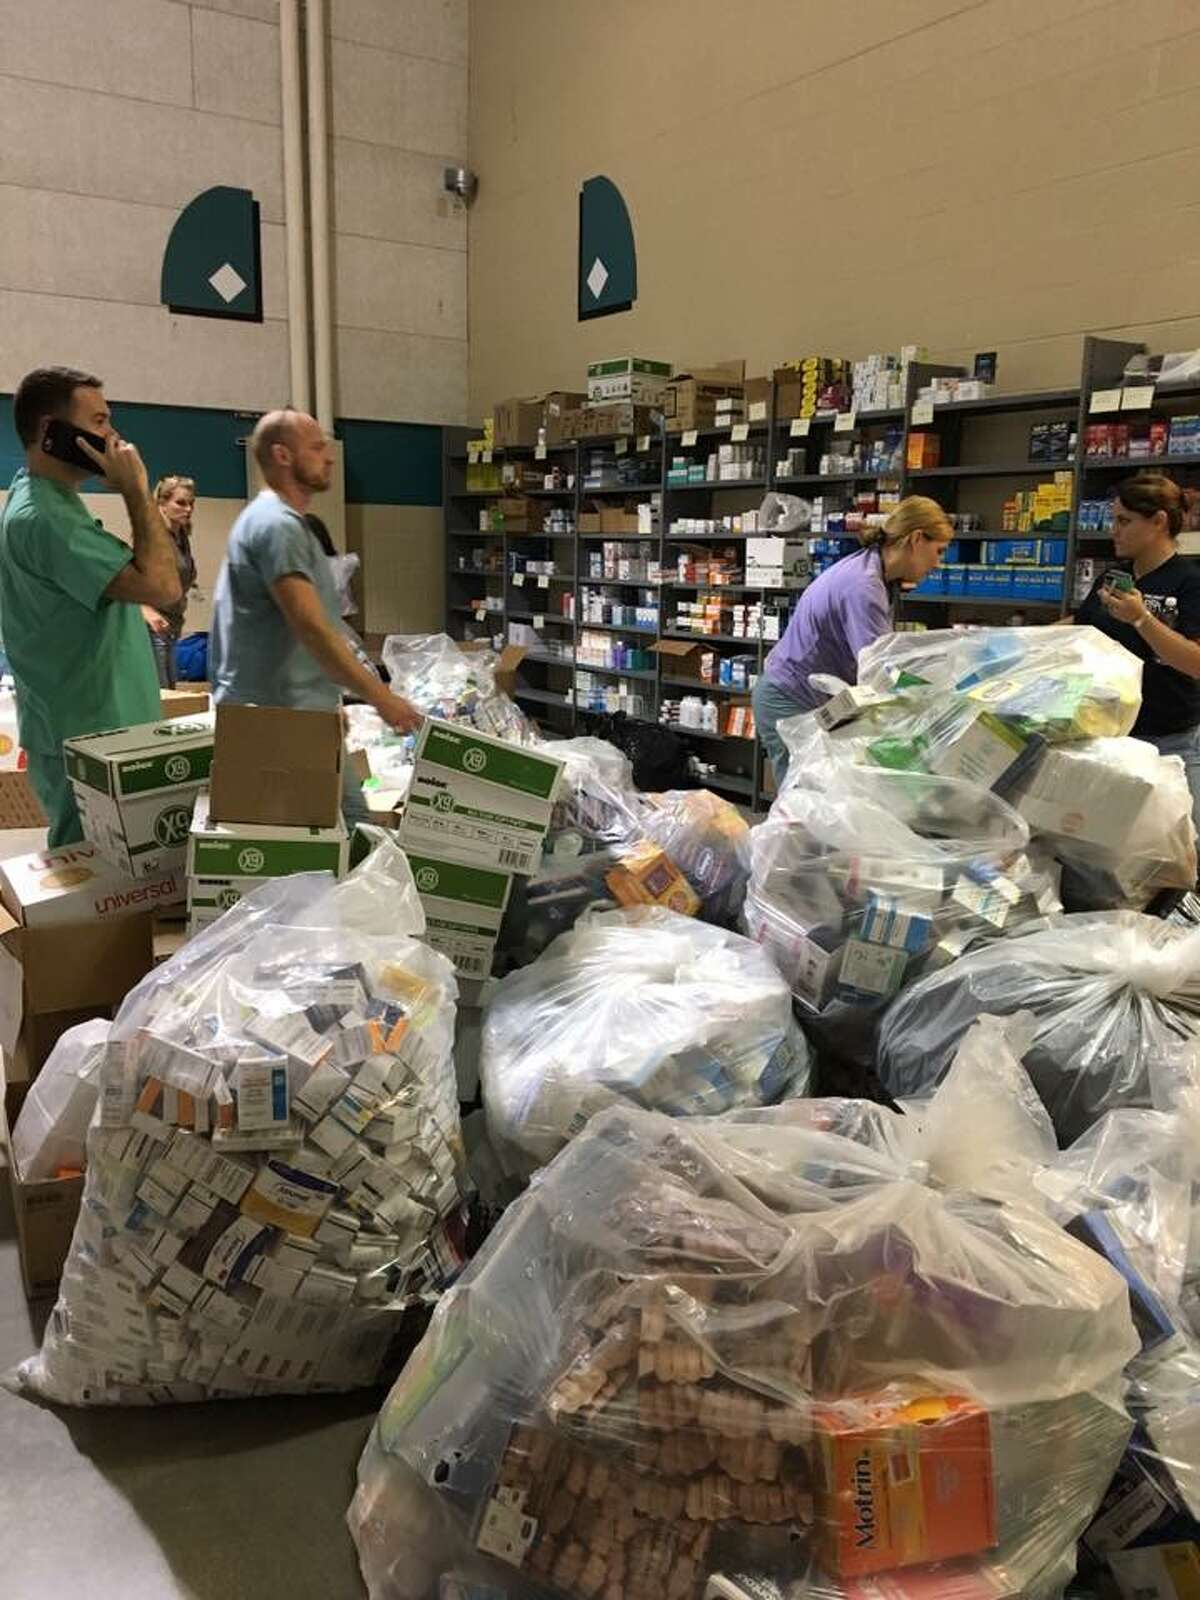 A group of Texas doctors are looking to ship more than a ton of medical supplies to Puerto Rico, which has been devastated by Hurricane Maria.